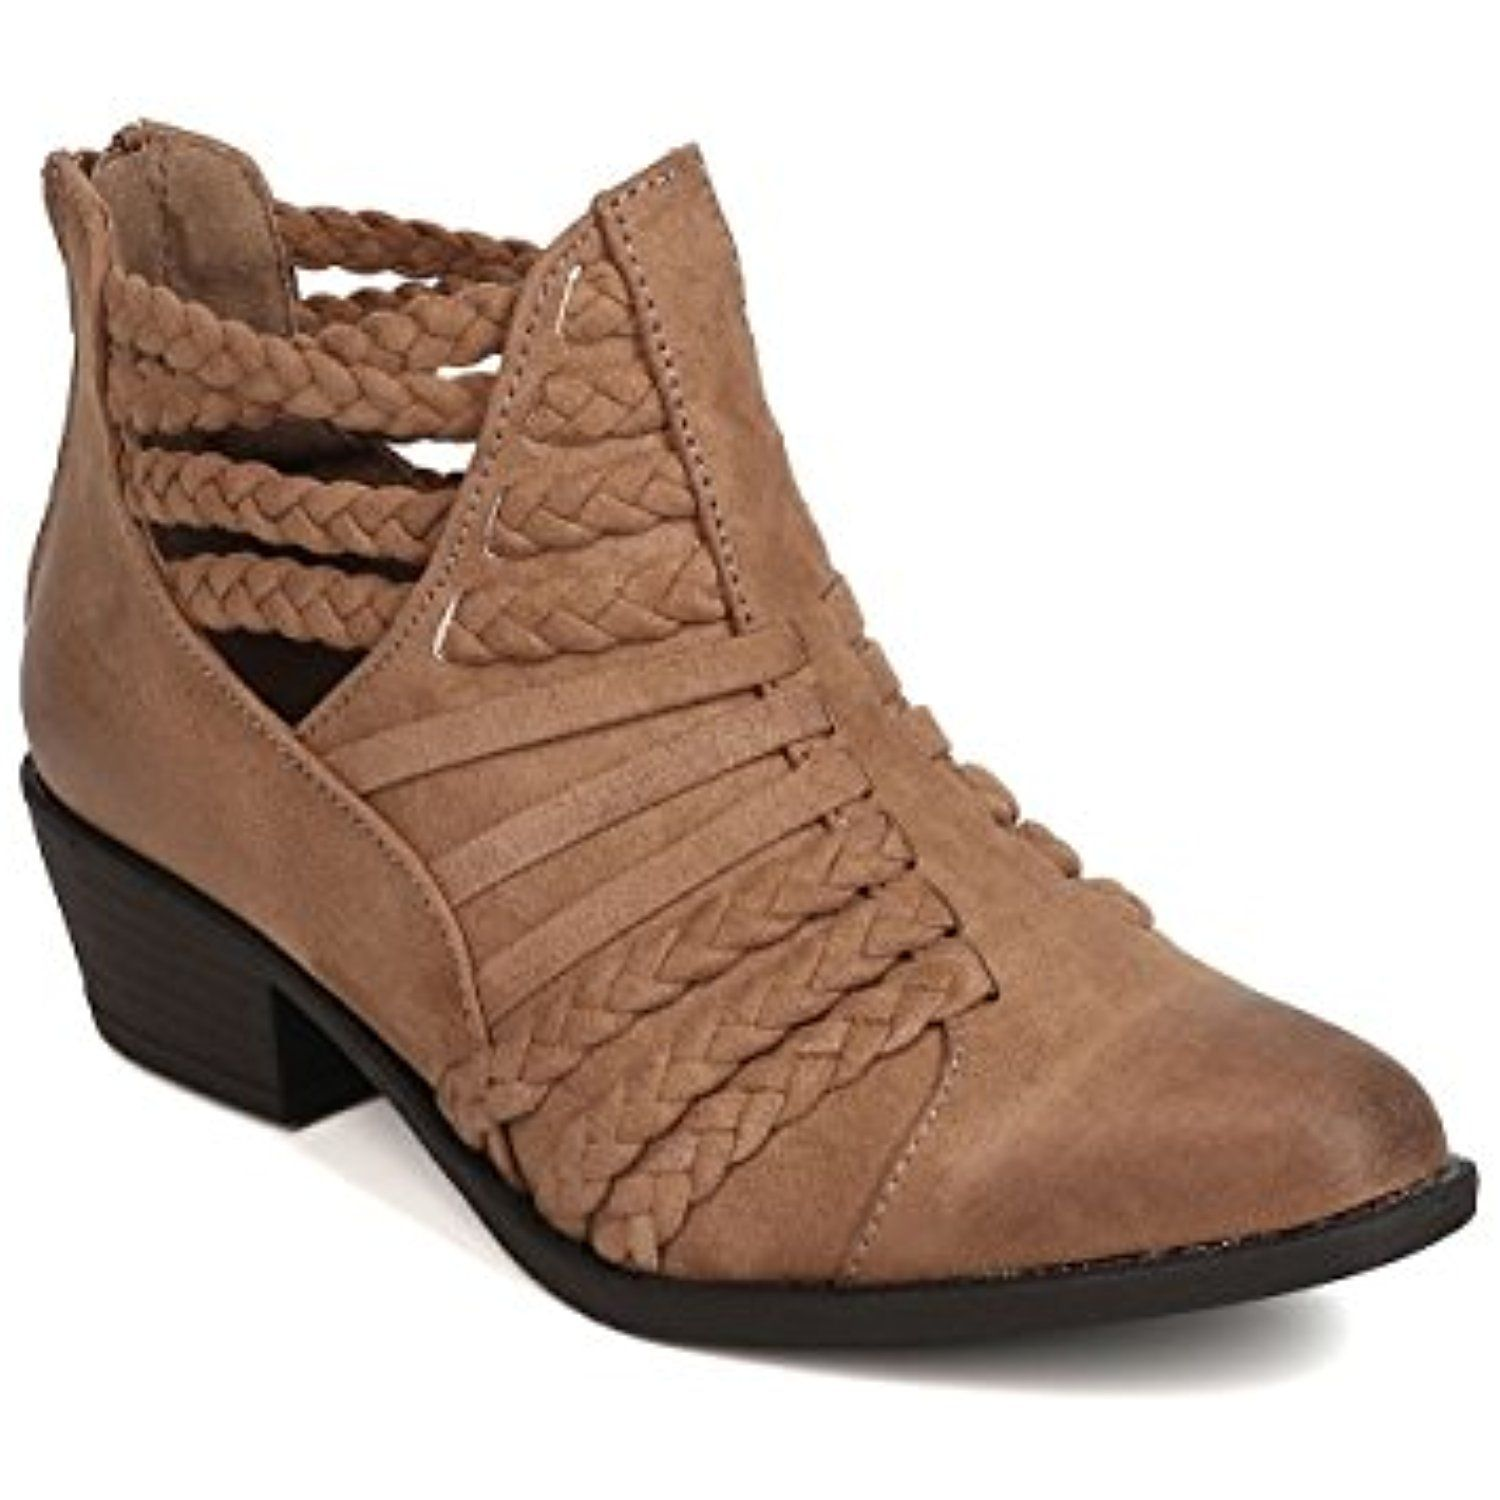 FH07 Women Faux Suede Pointy Toe Braided Cut Out Bootie - Taupe